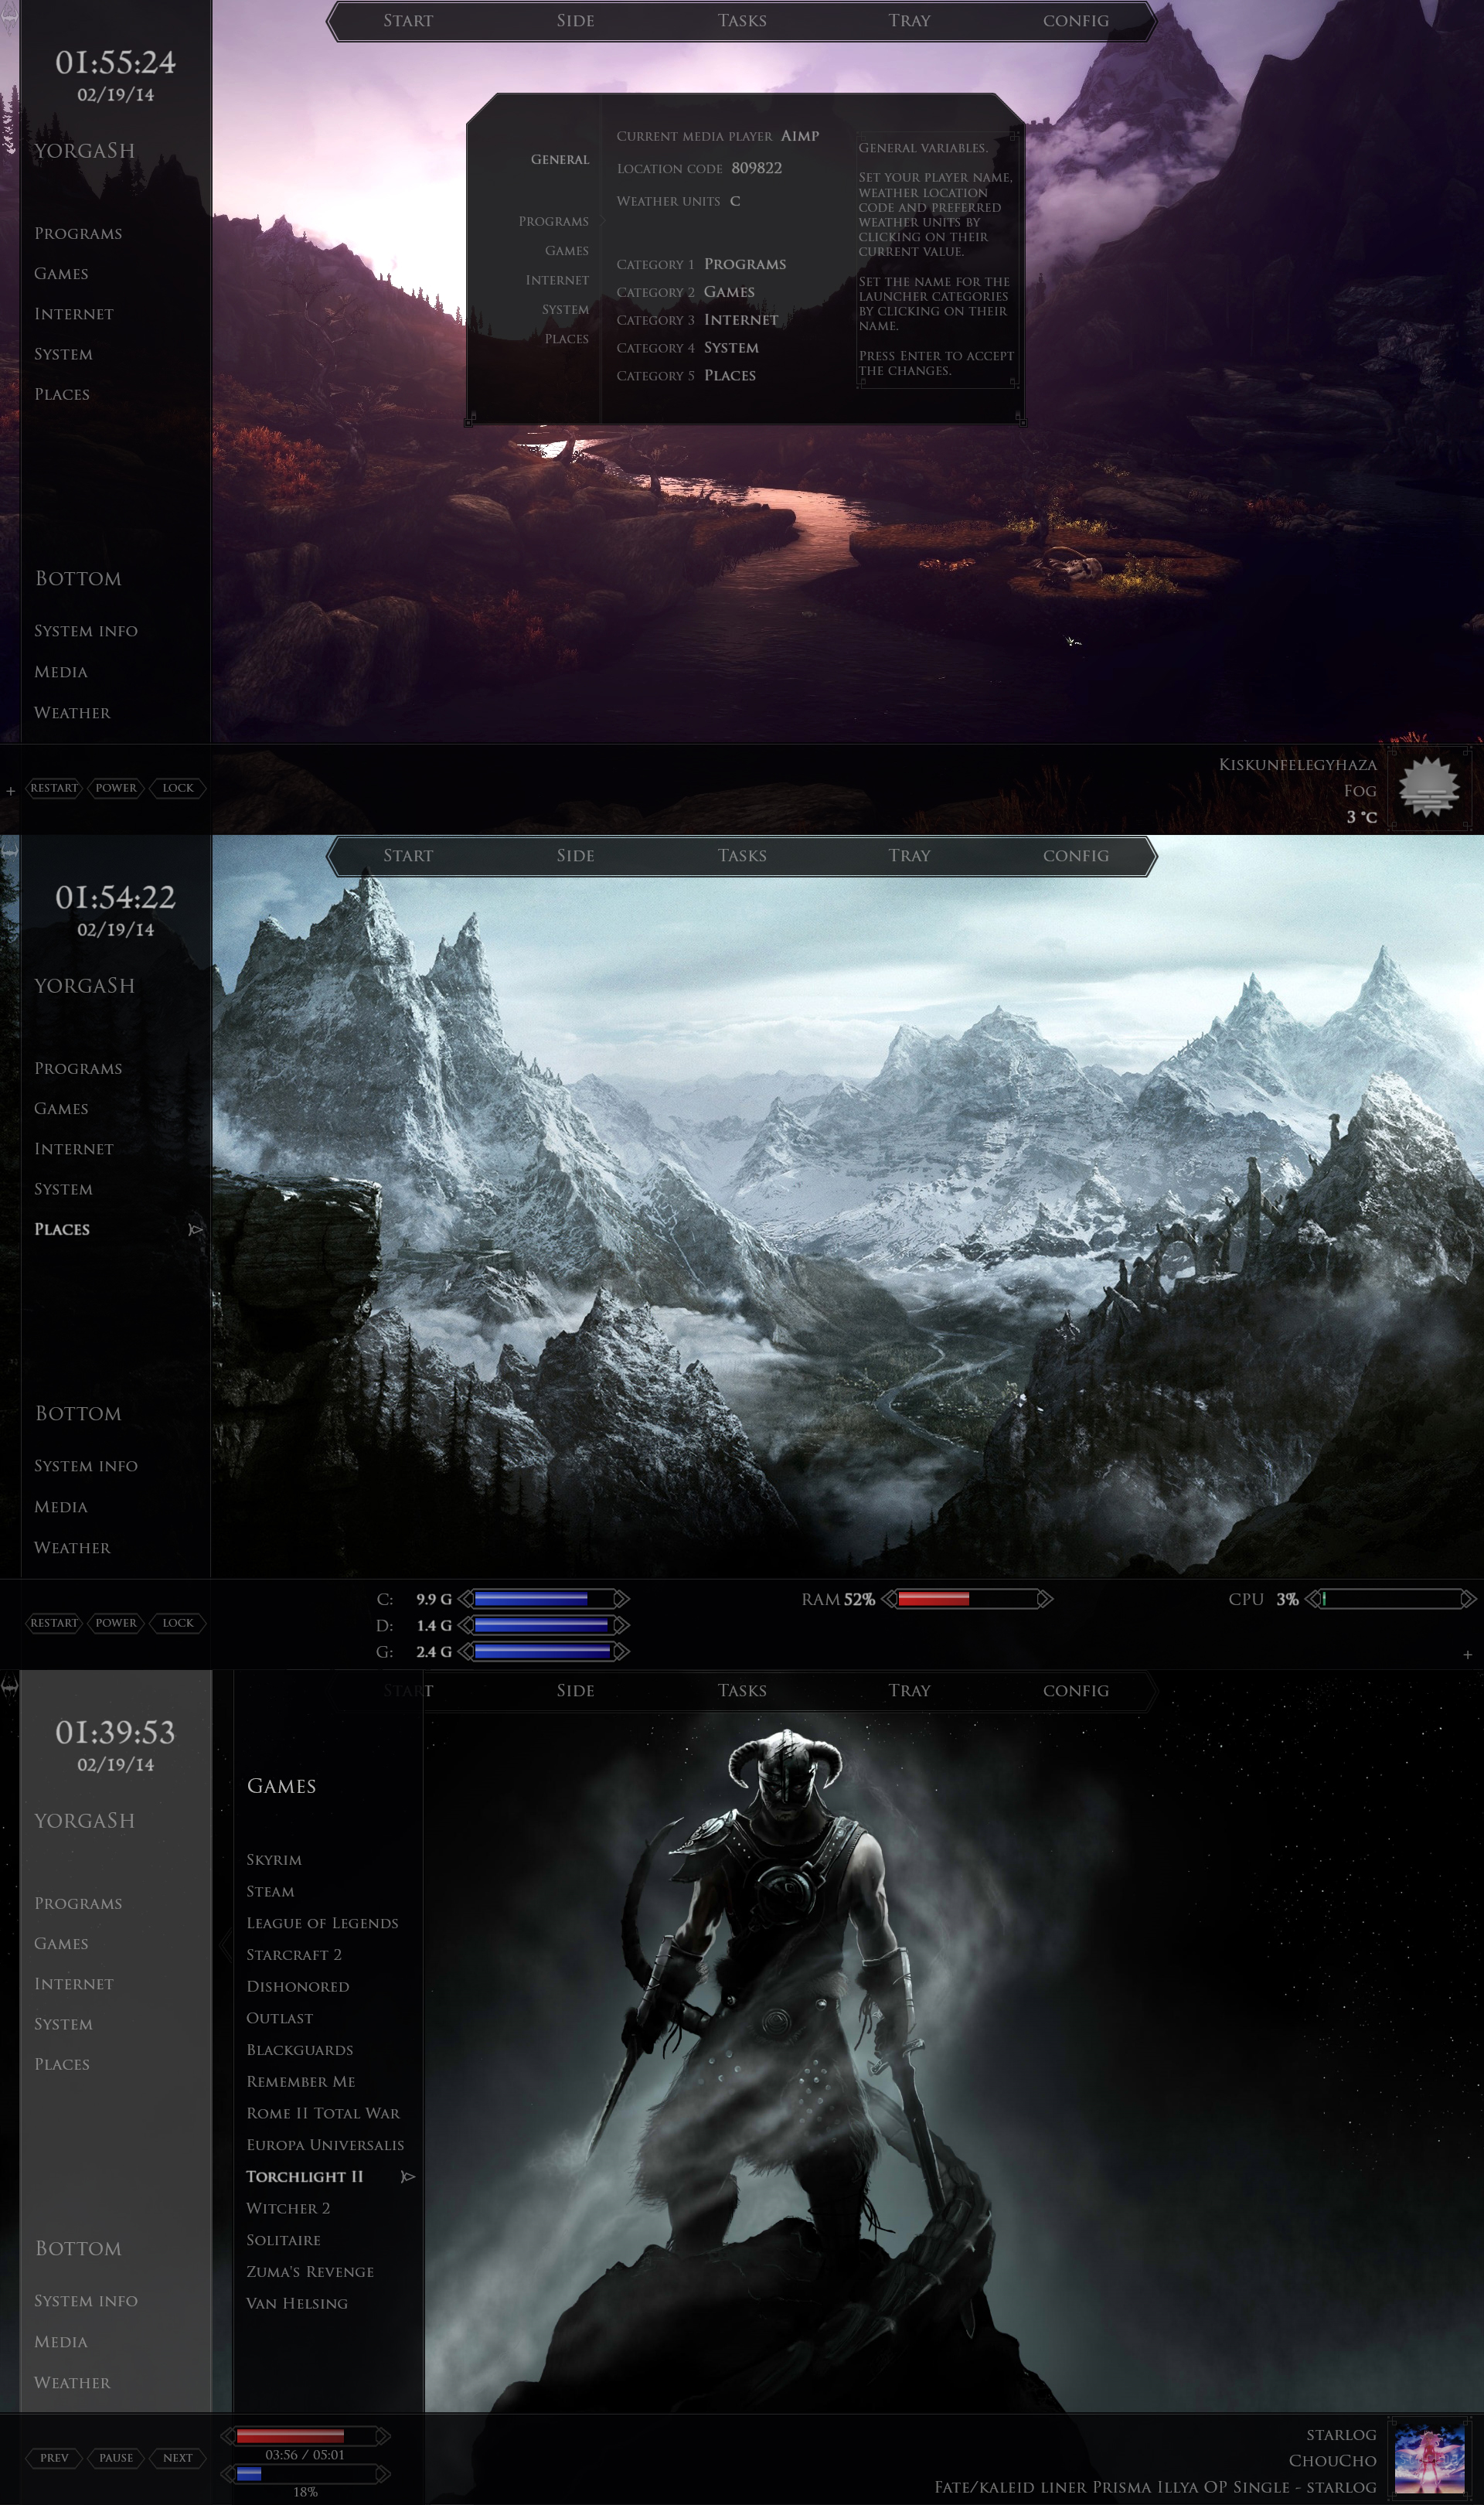 Skyrim Desktop 1.02 by yorgash